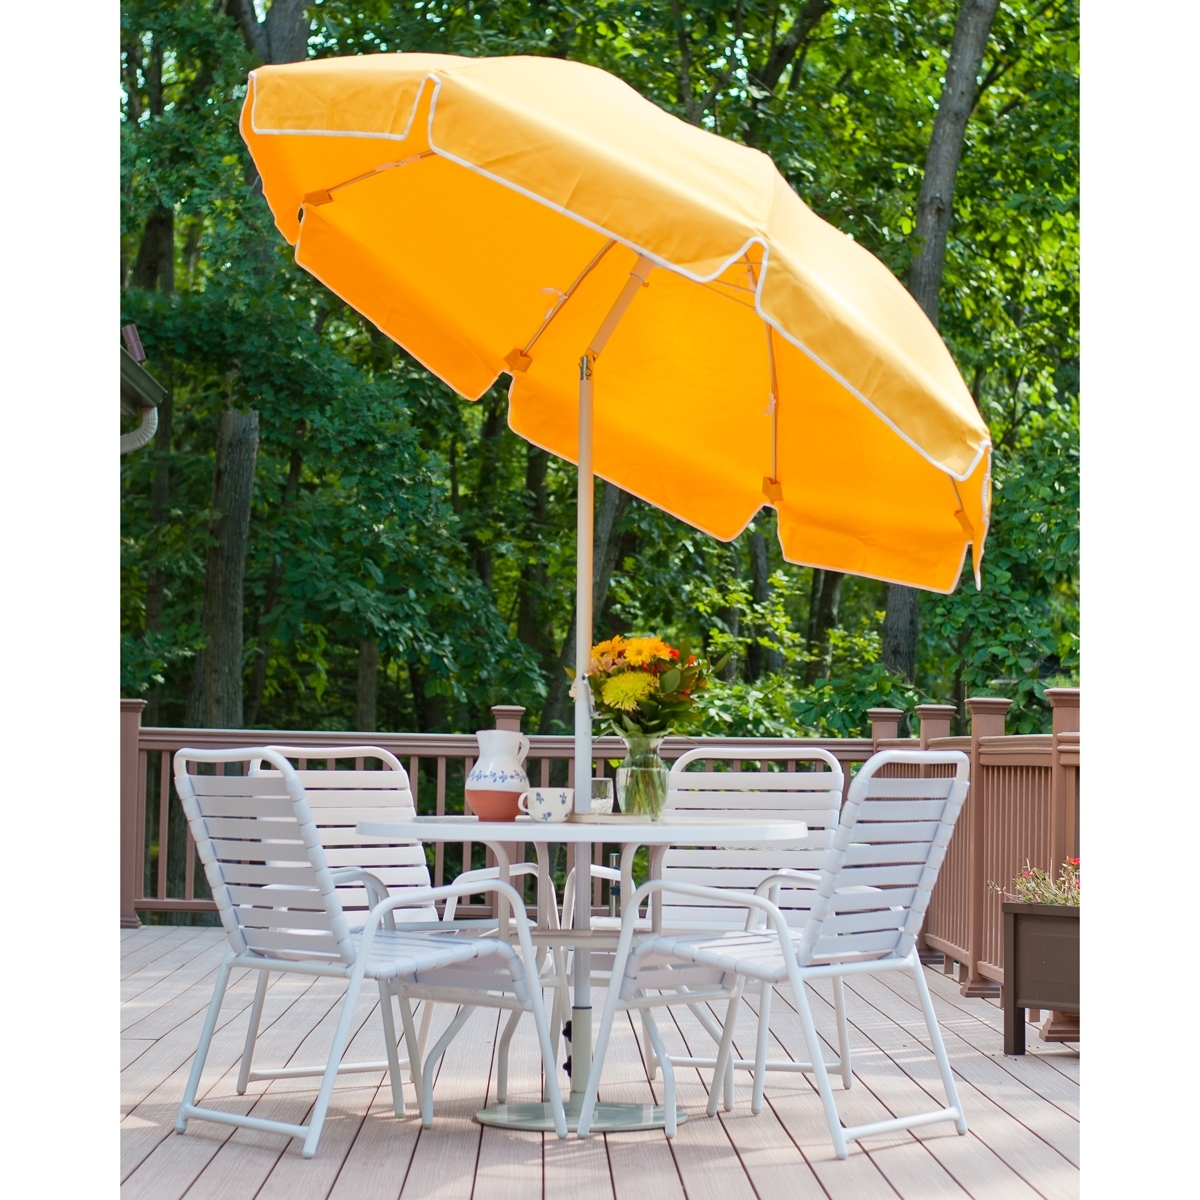 Yellow Patio Umbrellas Regarding Well Liked 7.5 Ft Frankford Acrylic Fiberglass Patio Umbrella With Valance (Gallery 14 of 20)